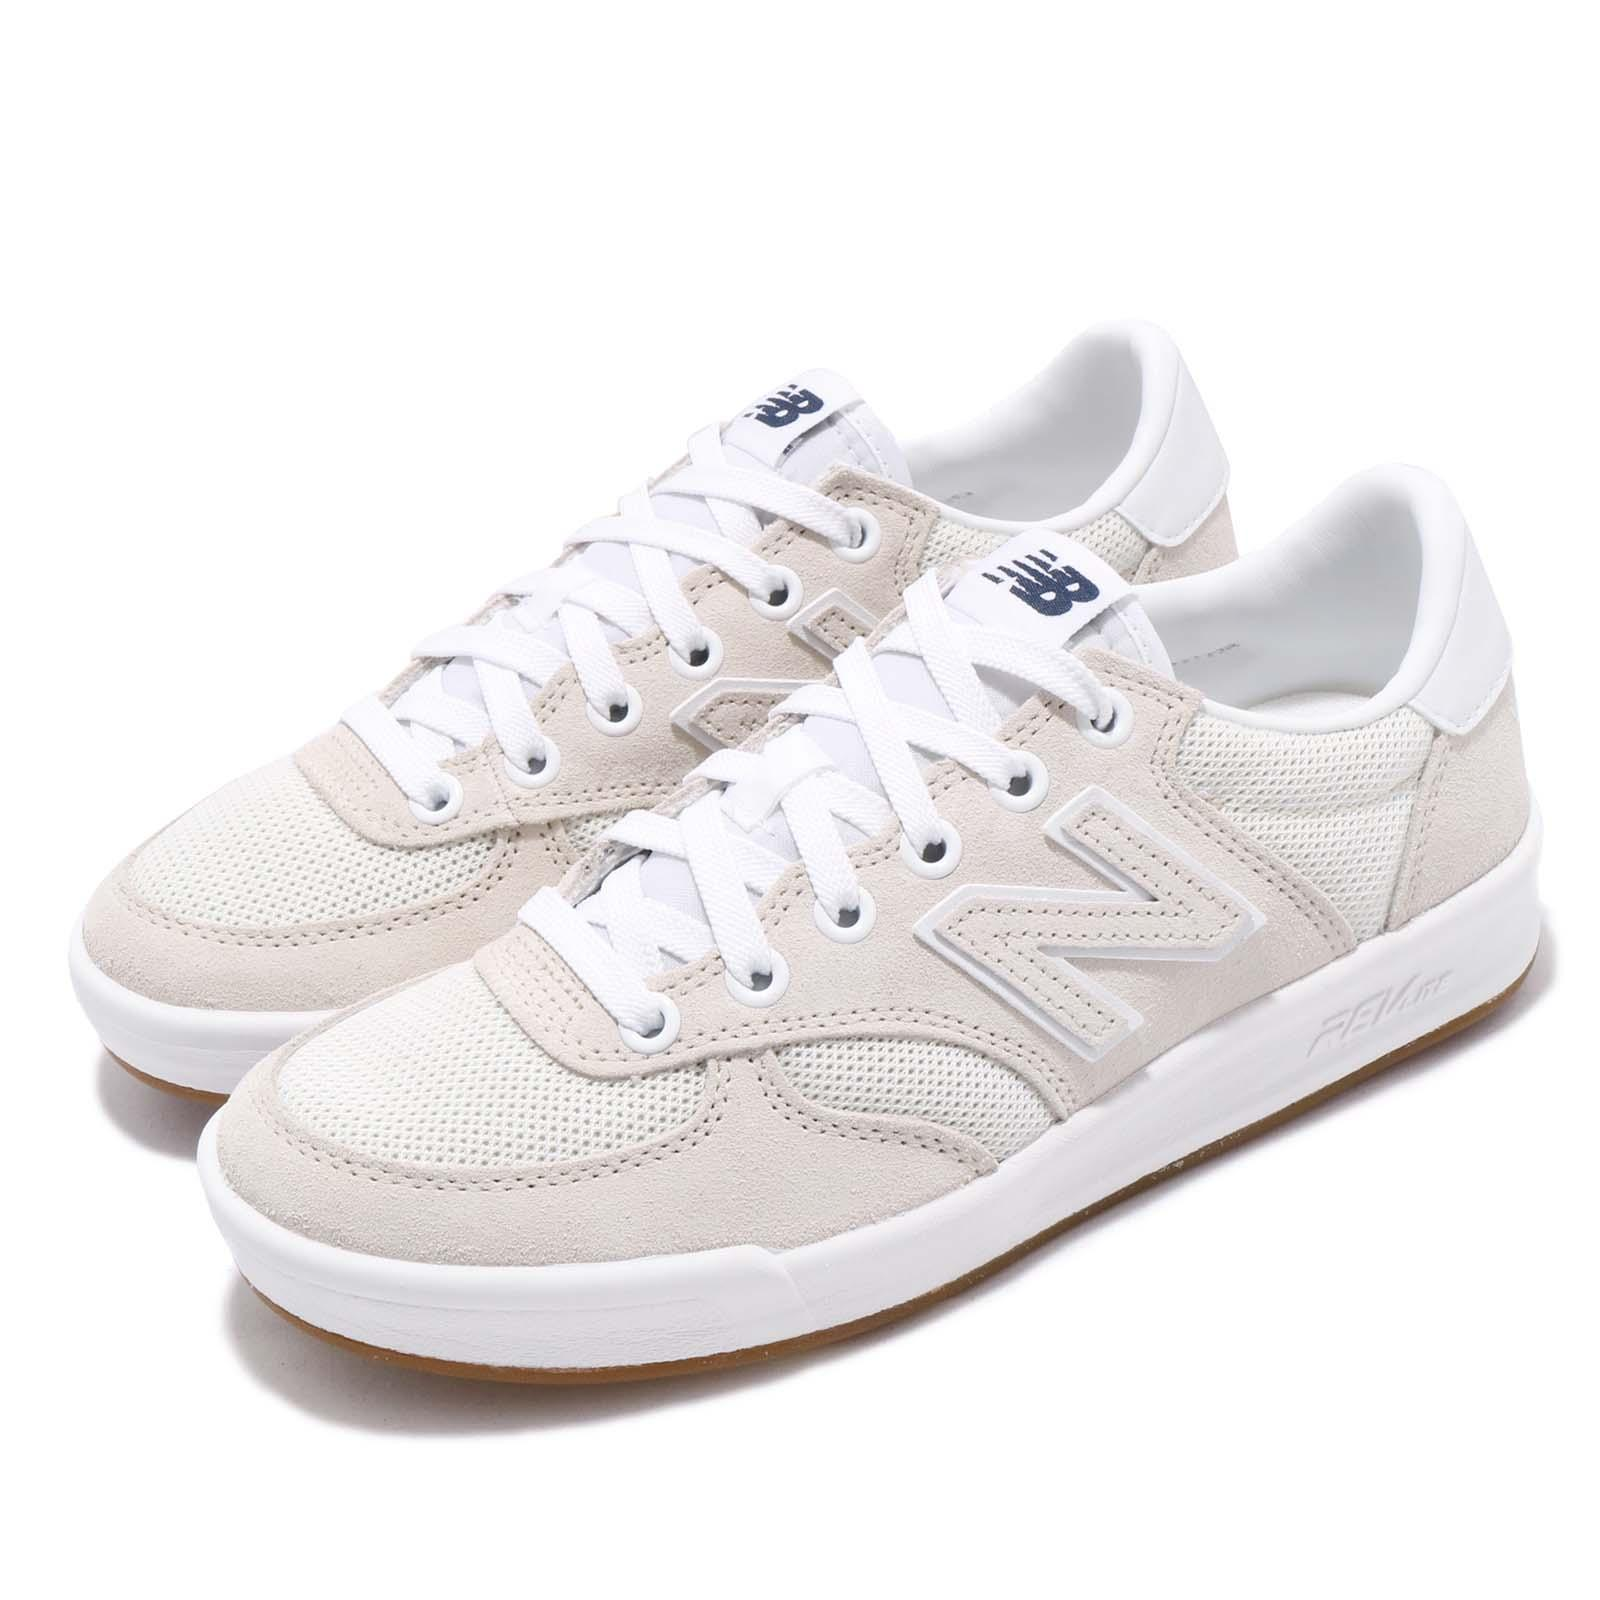 Details about New Balance CRT300 Beige Gum Mens Womens Retro Lifestyel  Shoes CRT300HM D